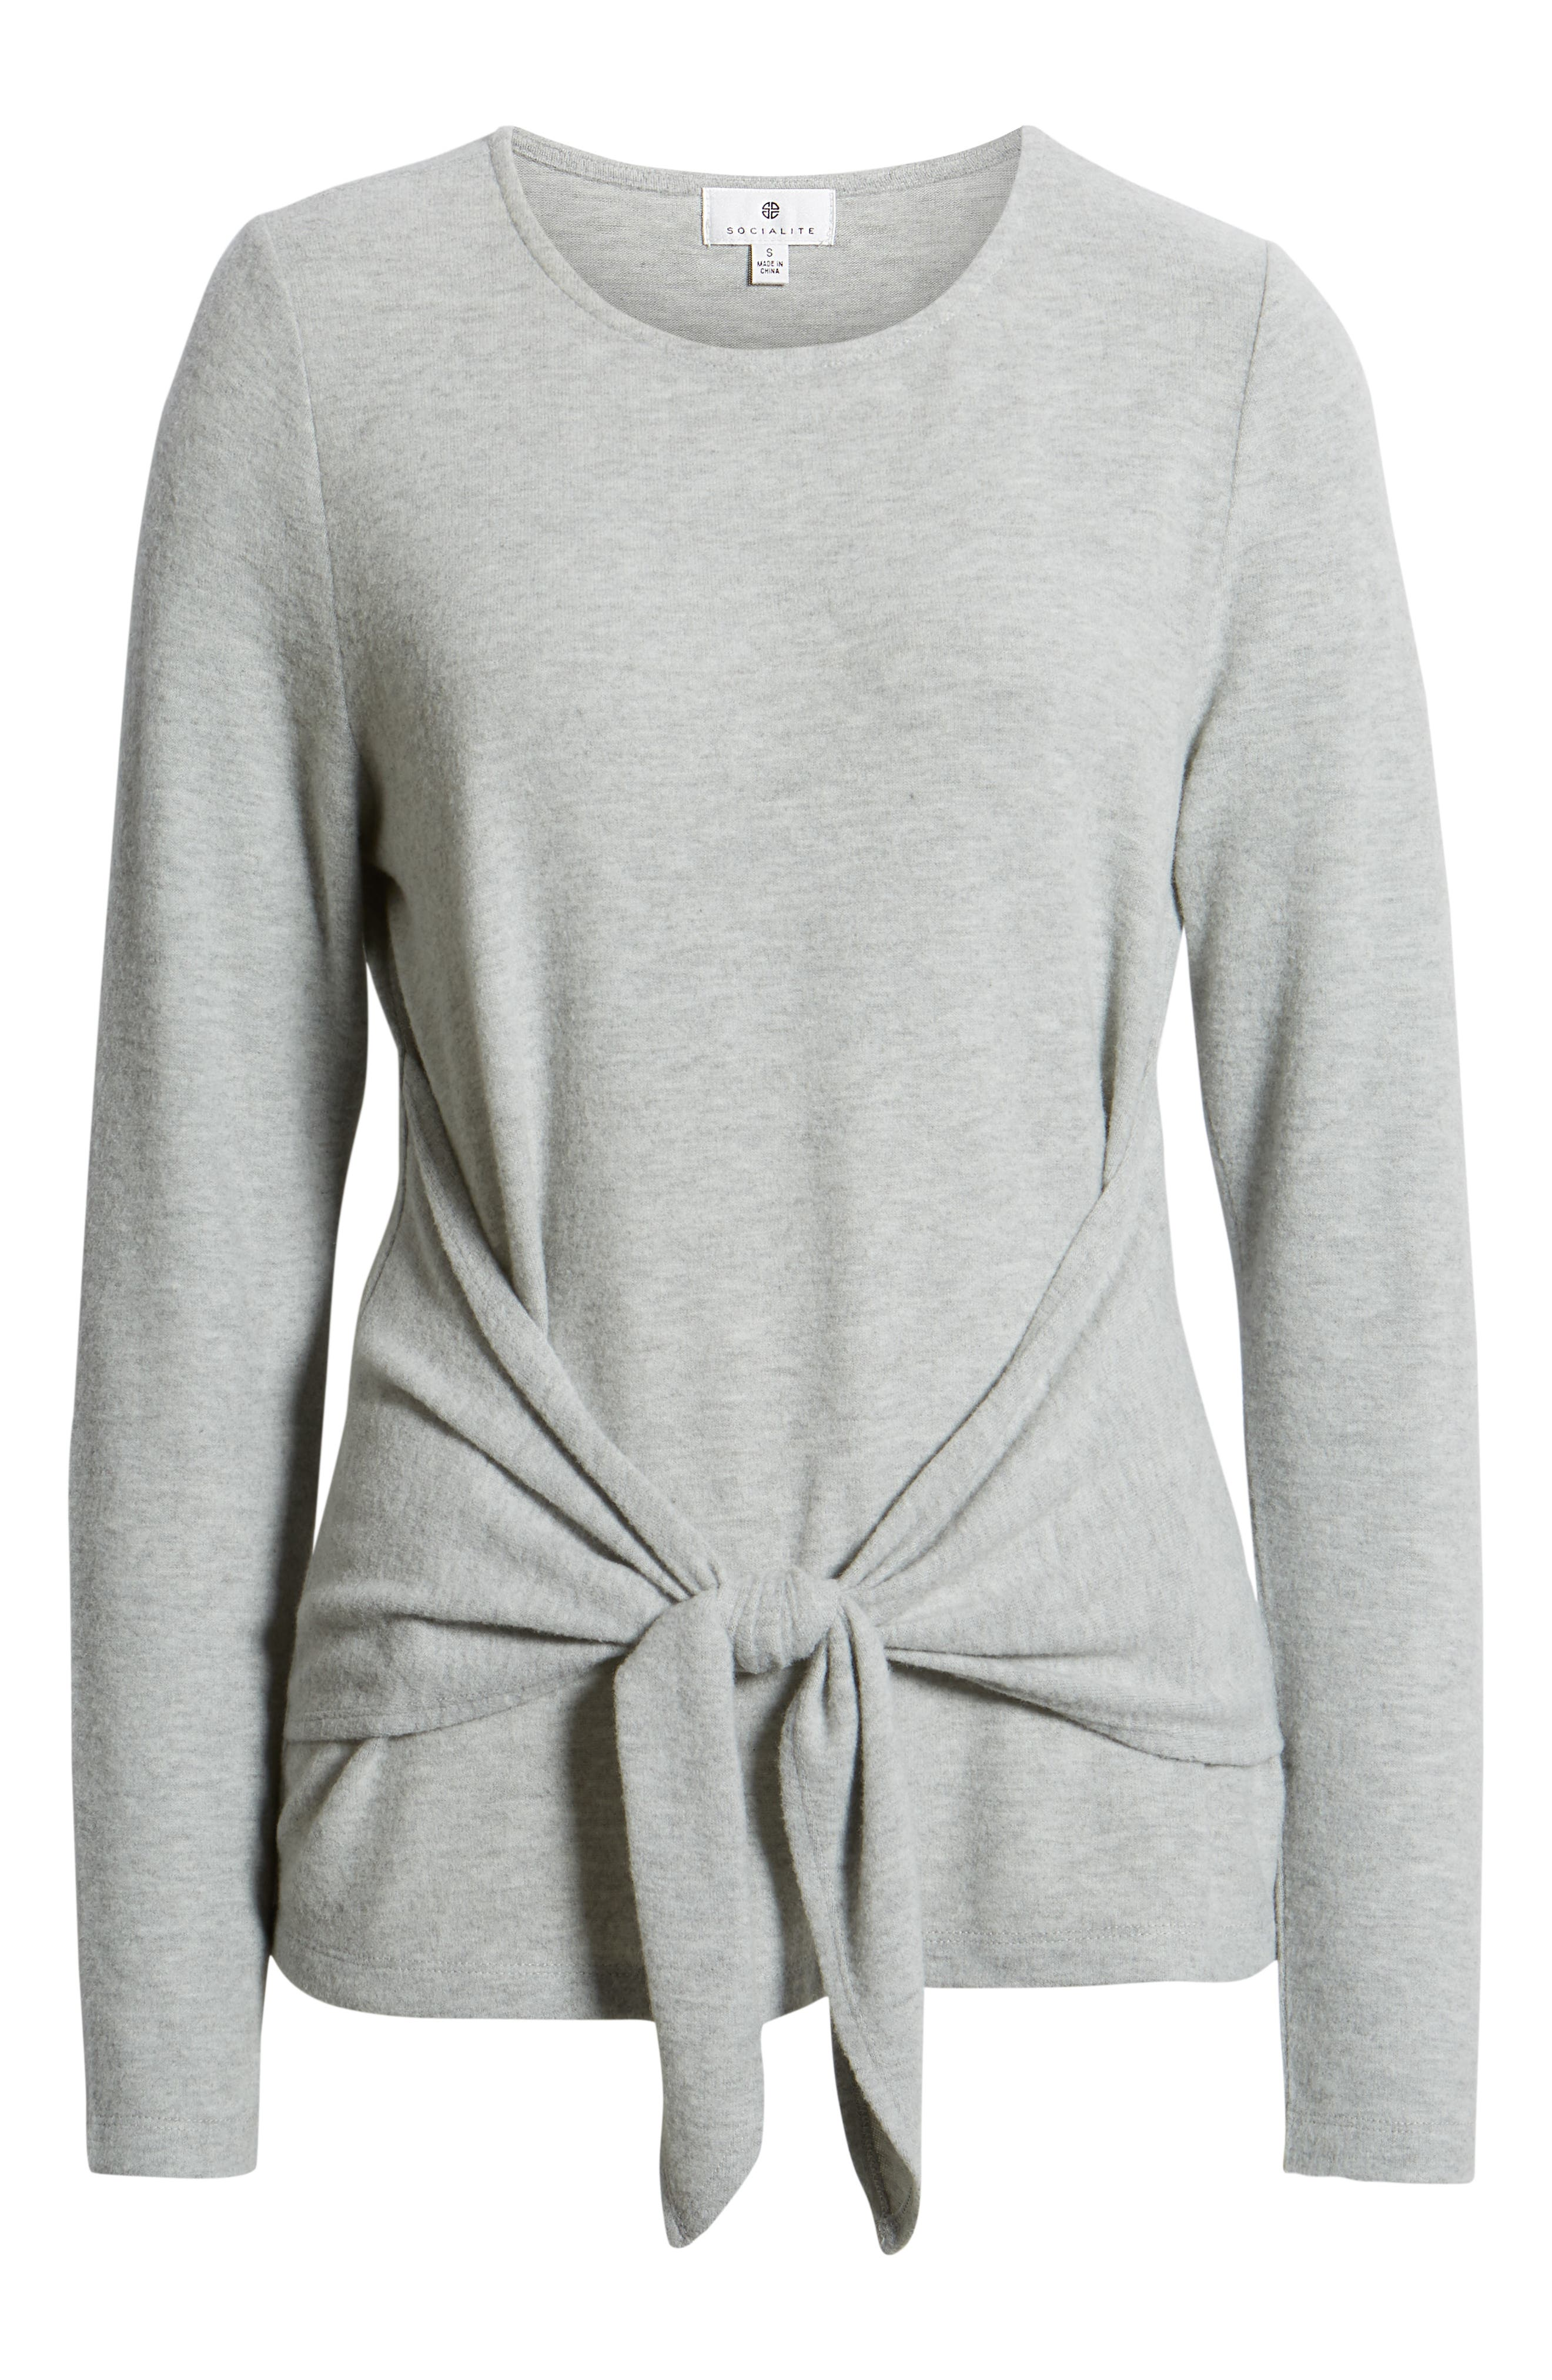 SOCIALITE, Tie Front Top, Alternate thumbnail 6, color, HEATHER GREY